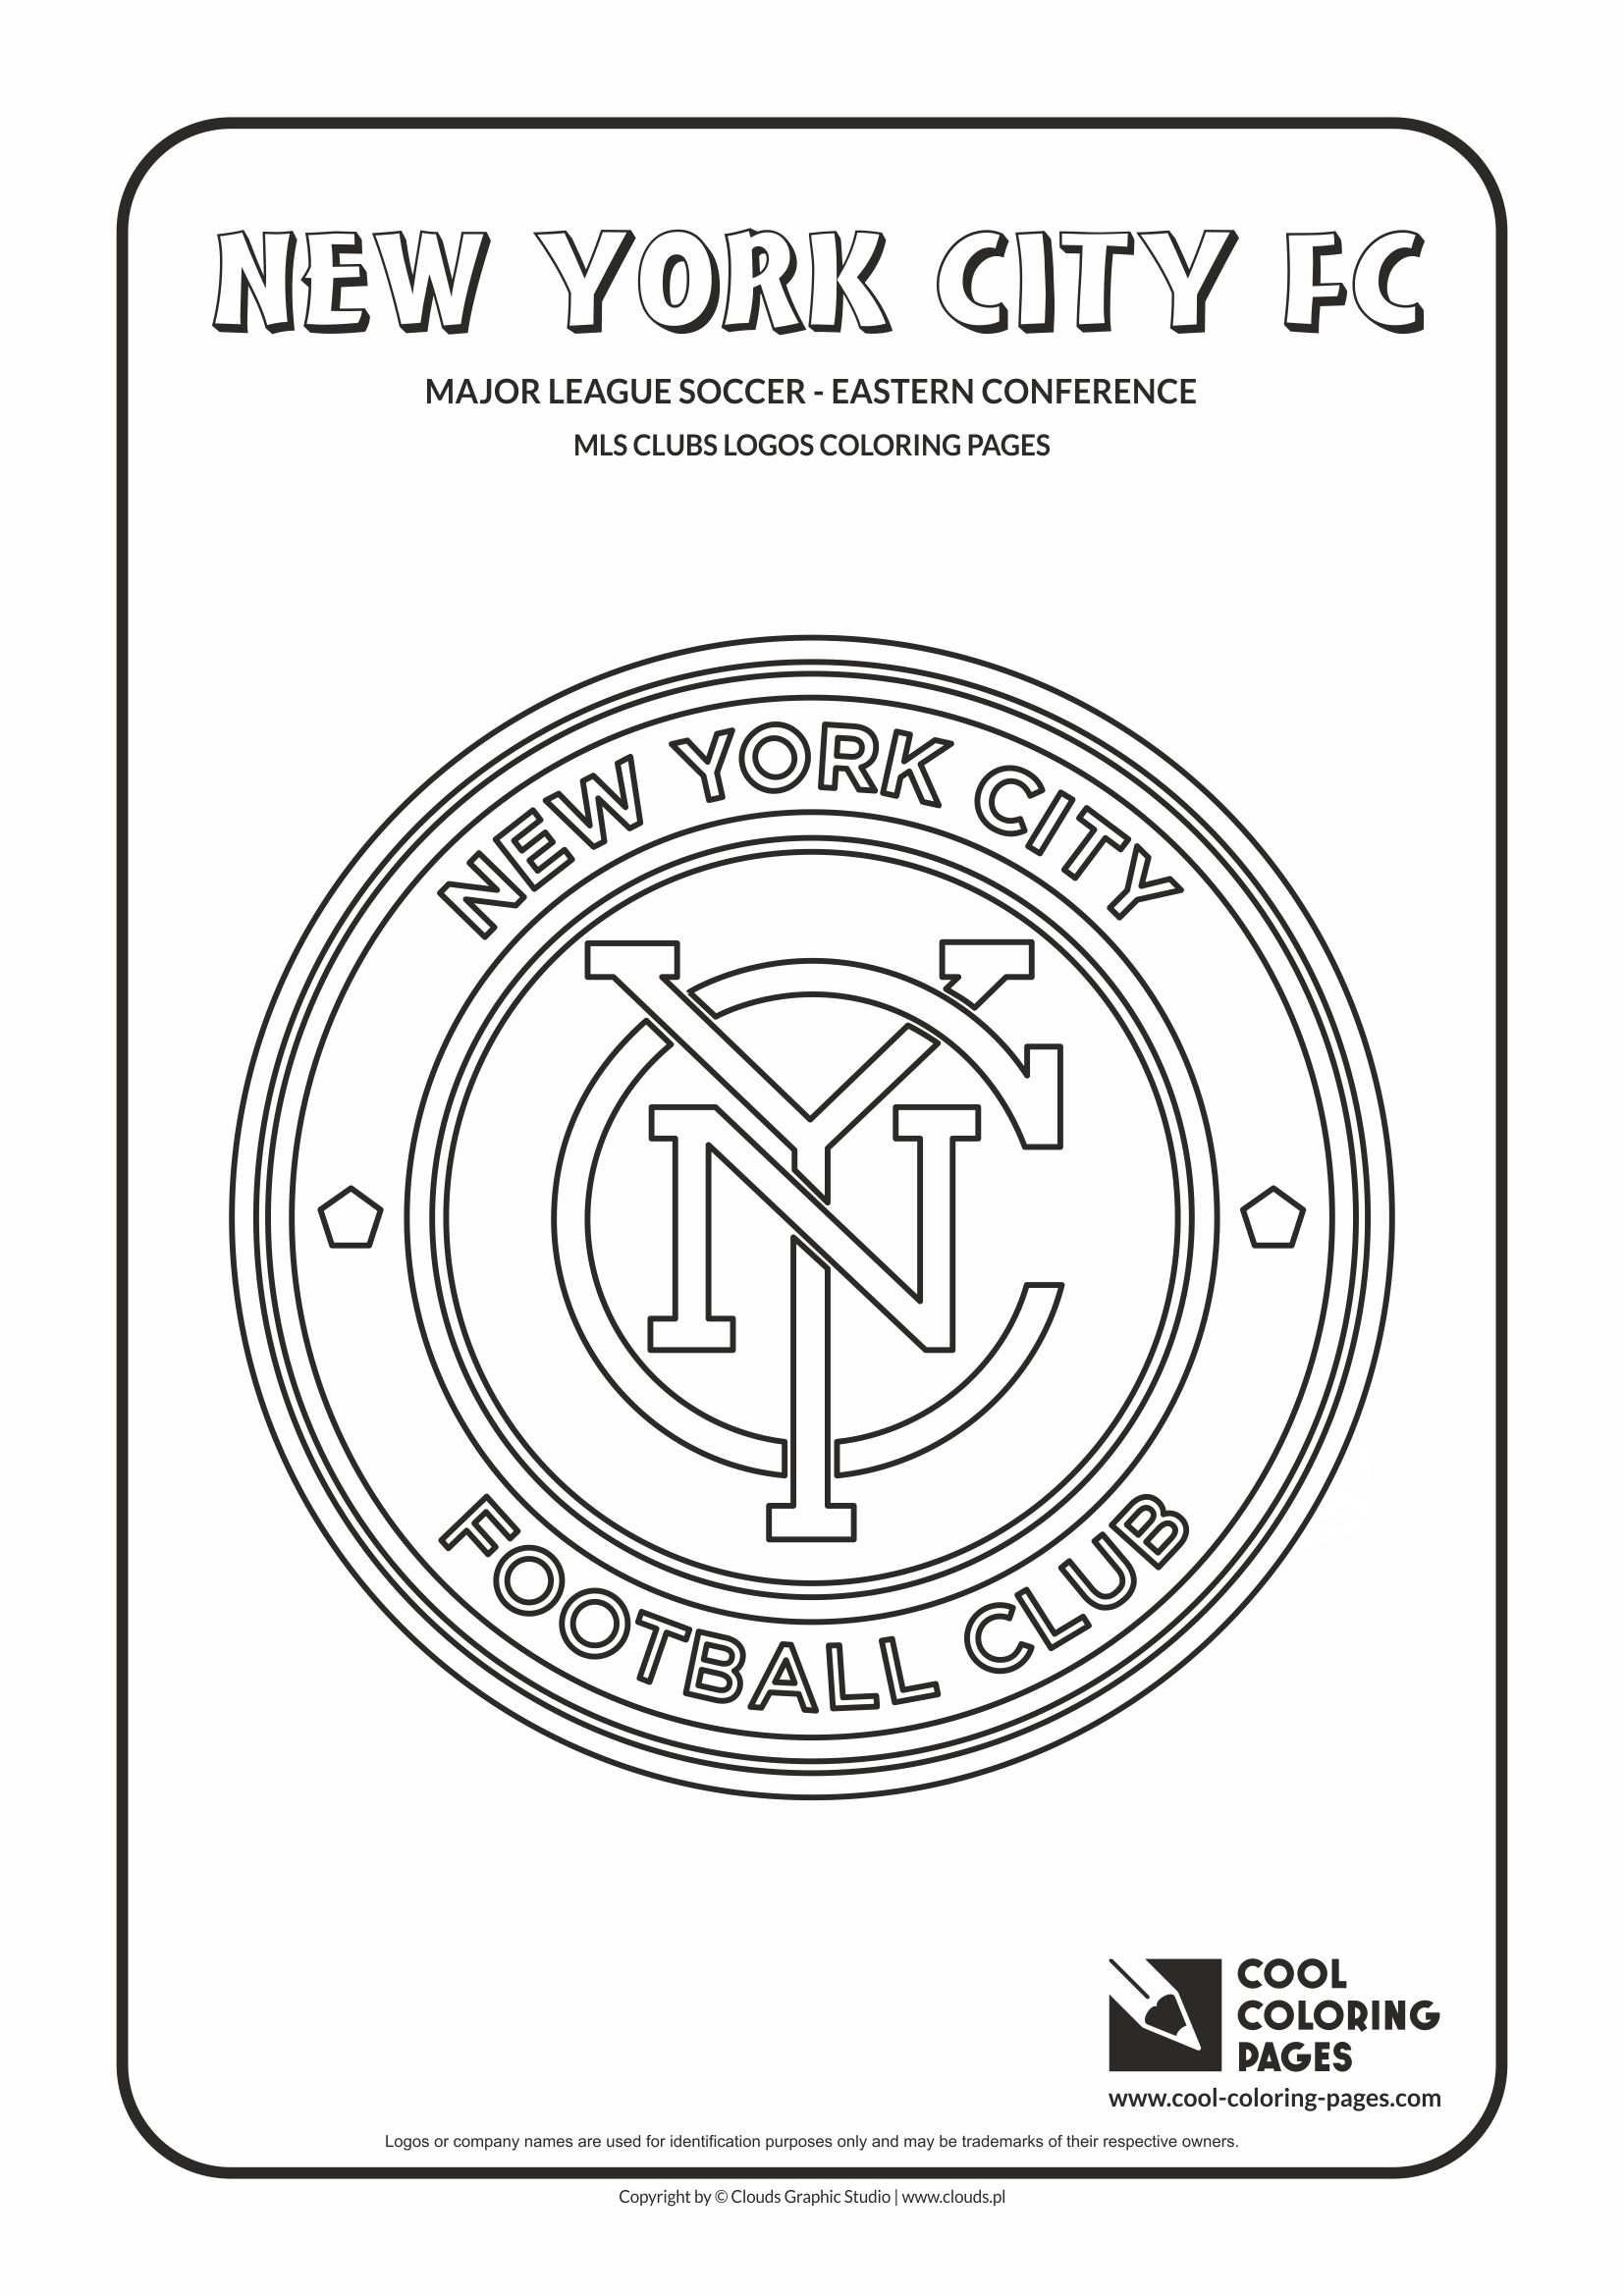 Cool Coloring Pages - Major League Soccer Logos - Eastern Conference / New York City FC logo / Coloring page with New York City FC logo